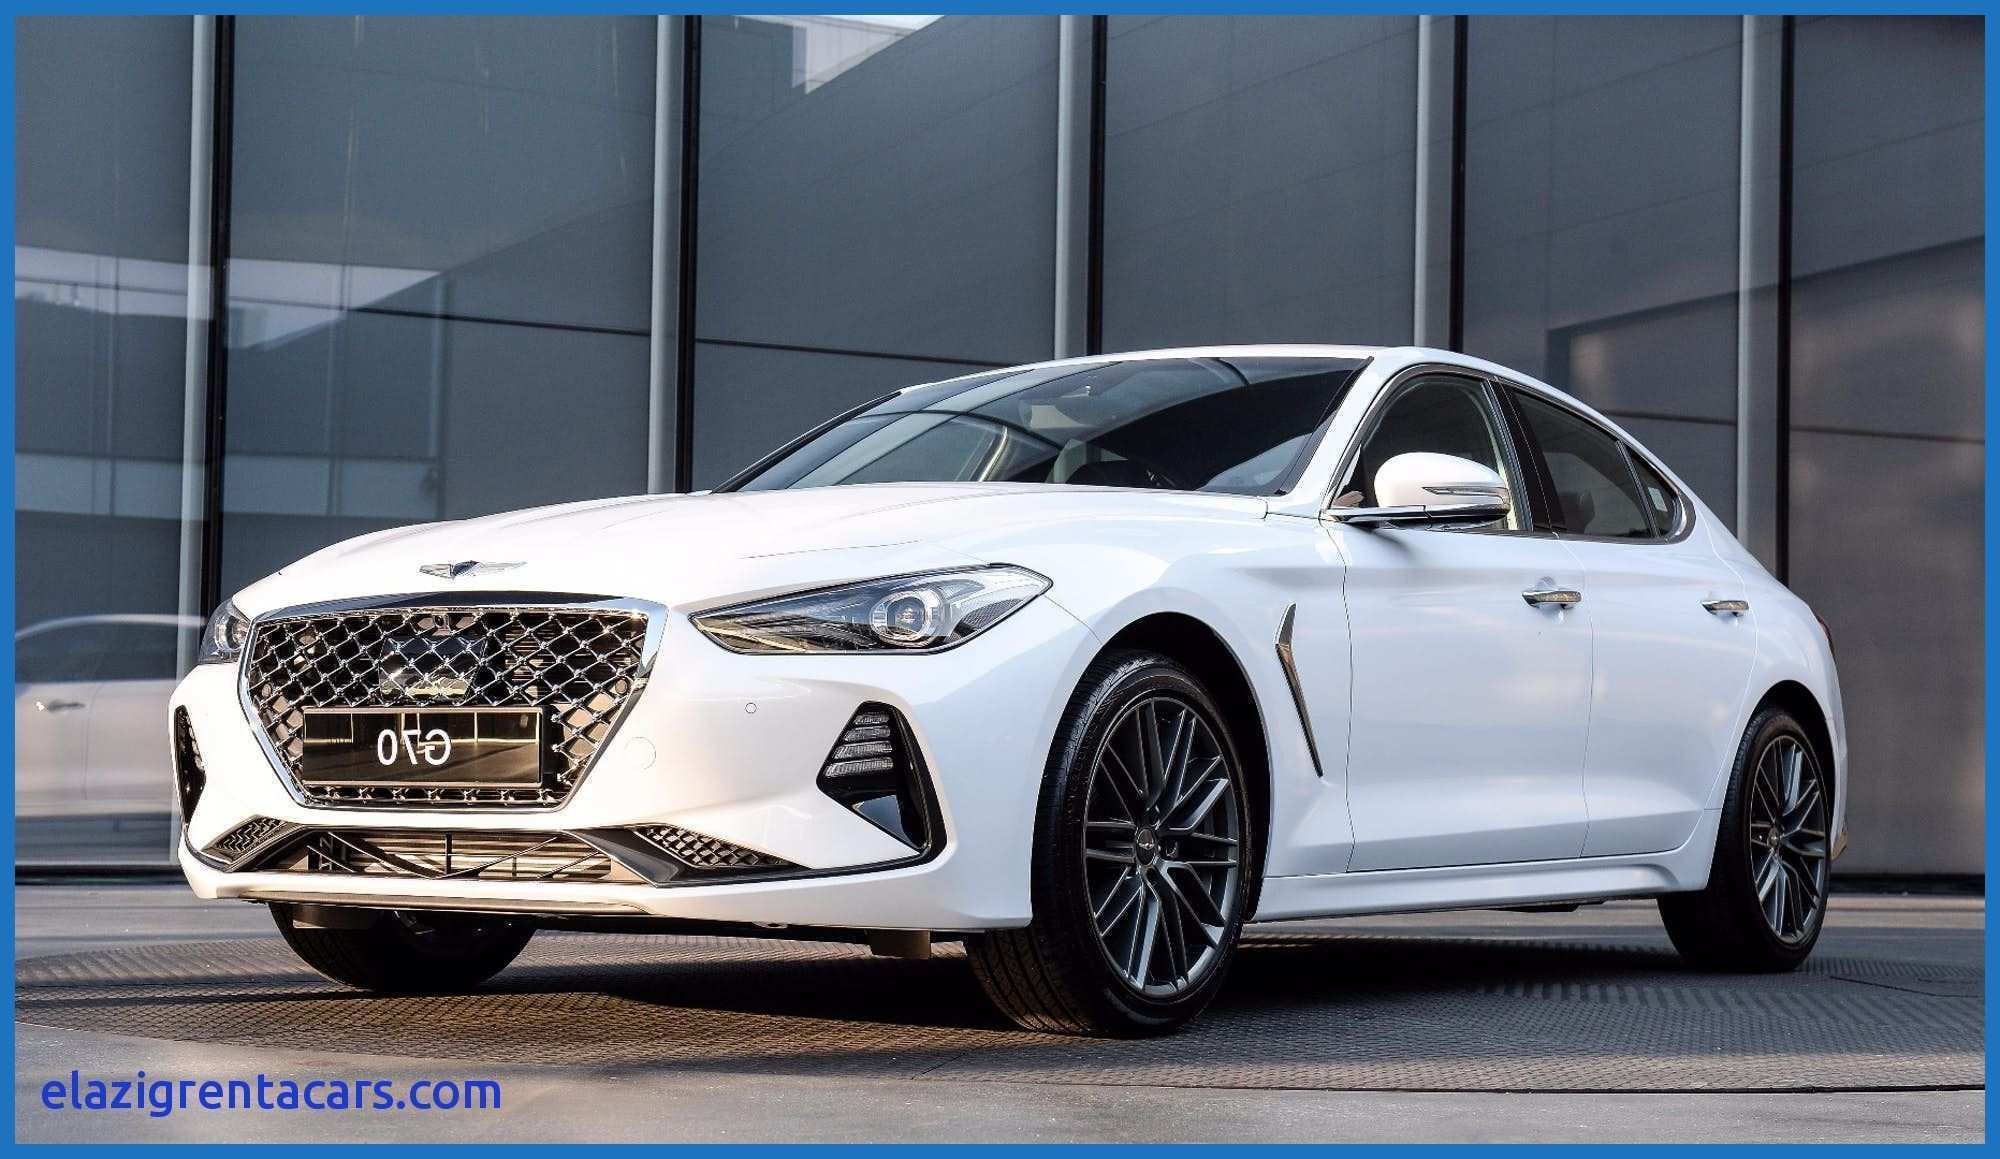 33 All New 2019 Hyundai Genesis Coupe V8 Price Design And Review